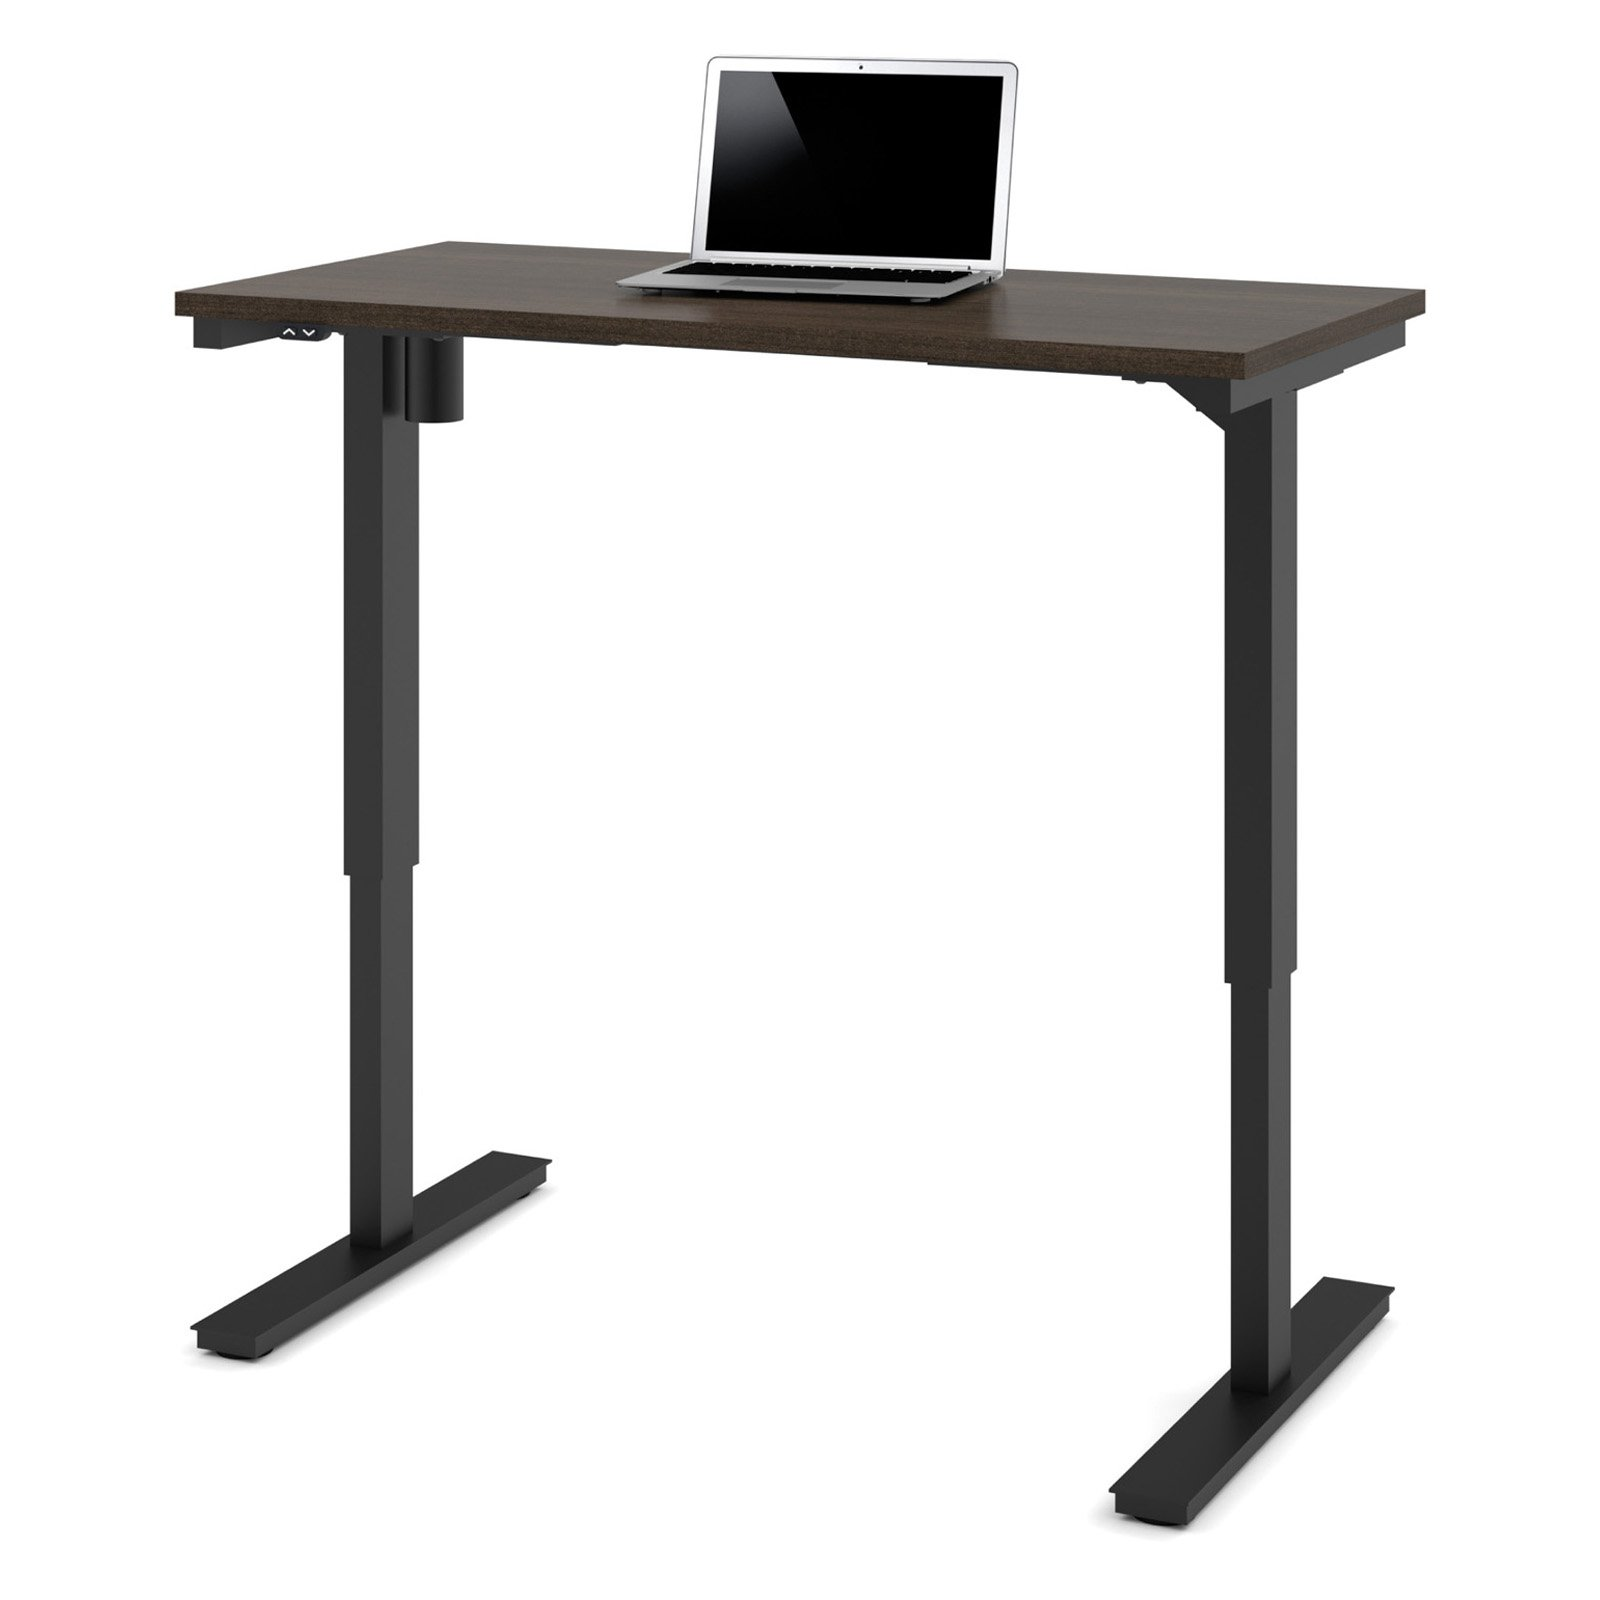 "Bestar 24"" x 48"" Electric Height adjustable table in Dark Chocolate by Bestar"